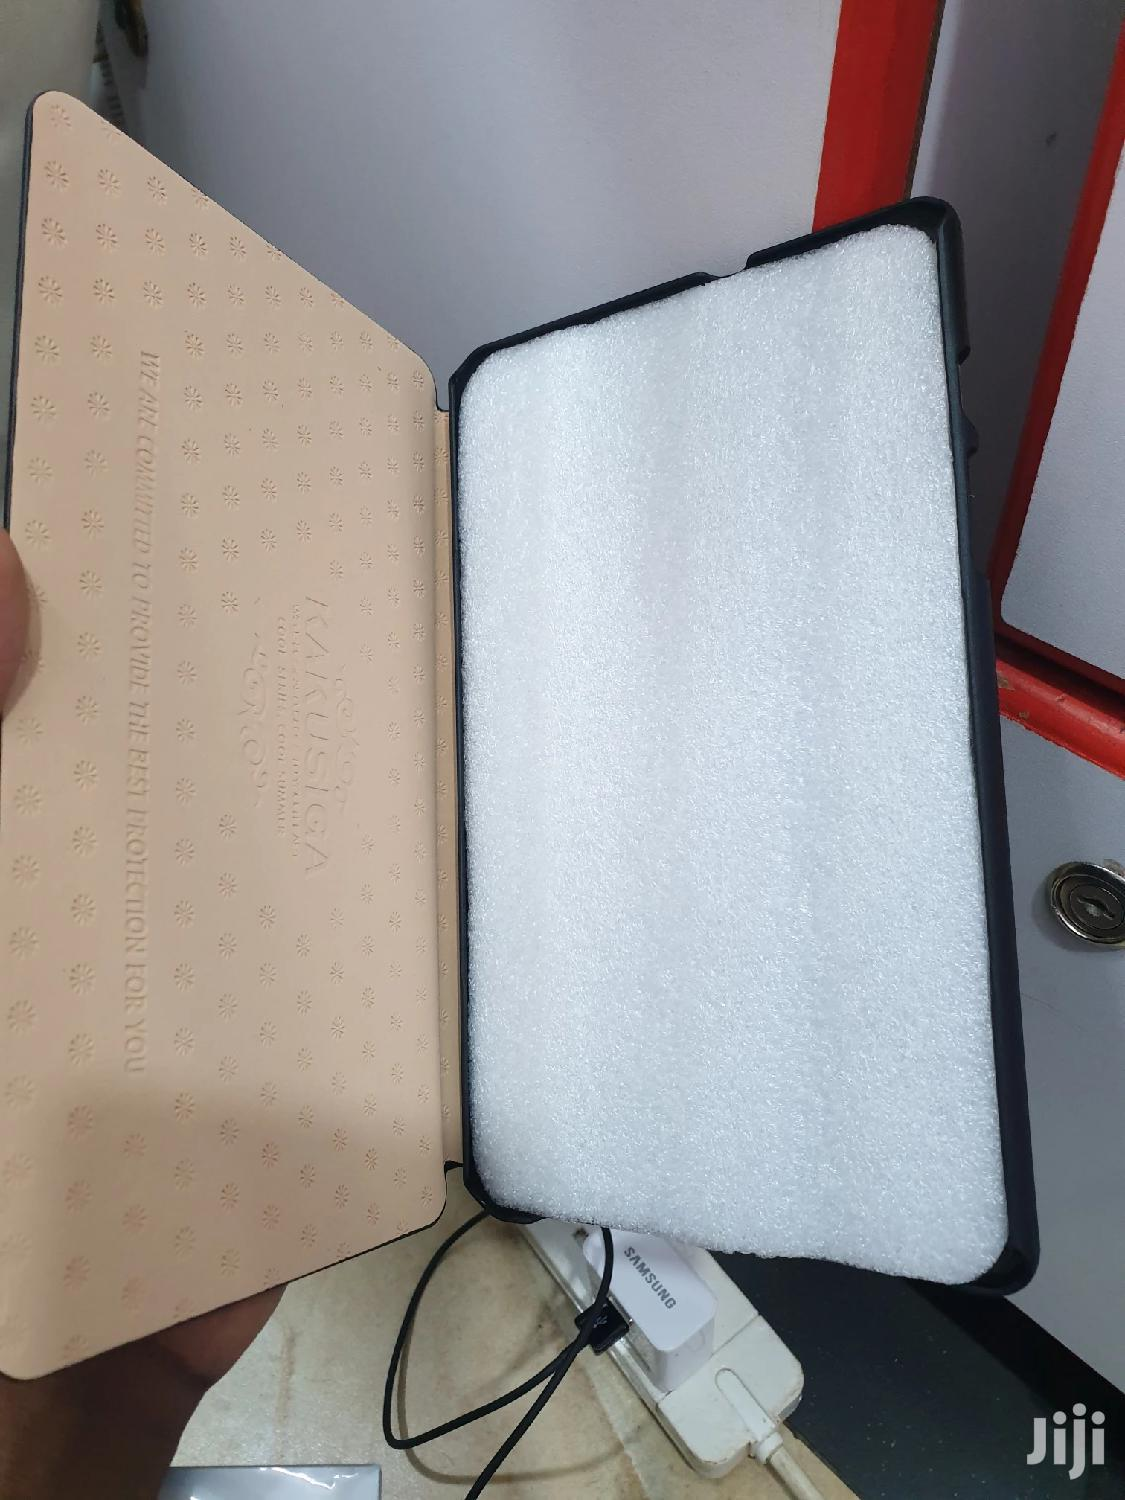 IPAD/TABLET BOOK COVERS Compatible With Samsung Tab, iPads | Accessories for Mobile Phones & Tablets for sale in Kampala, Central Region, Uganda